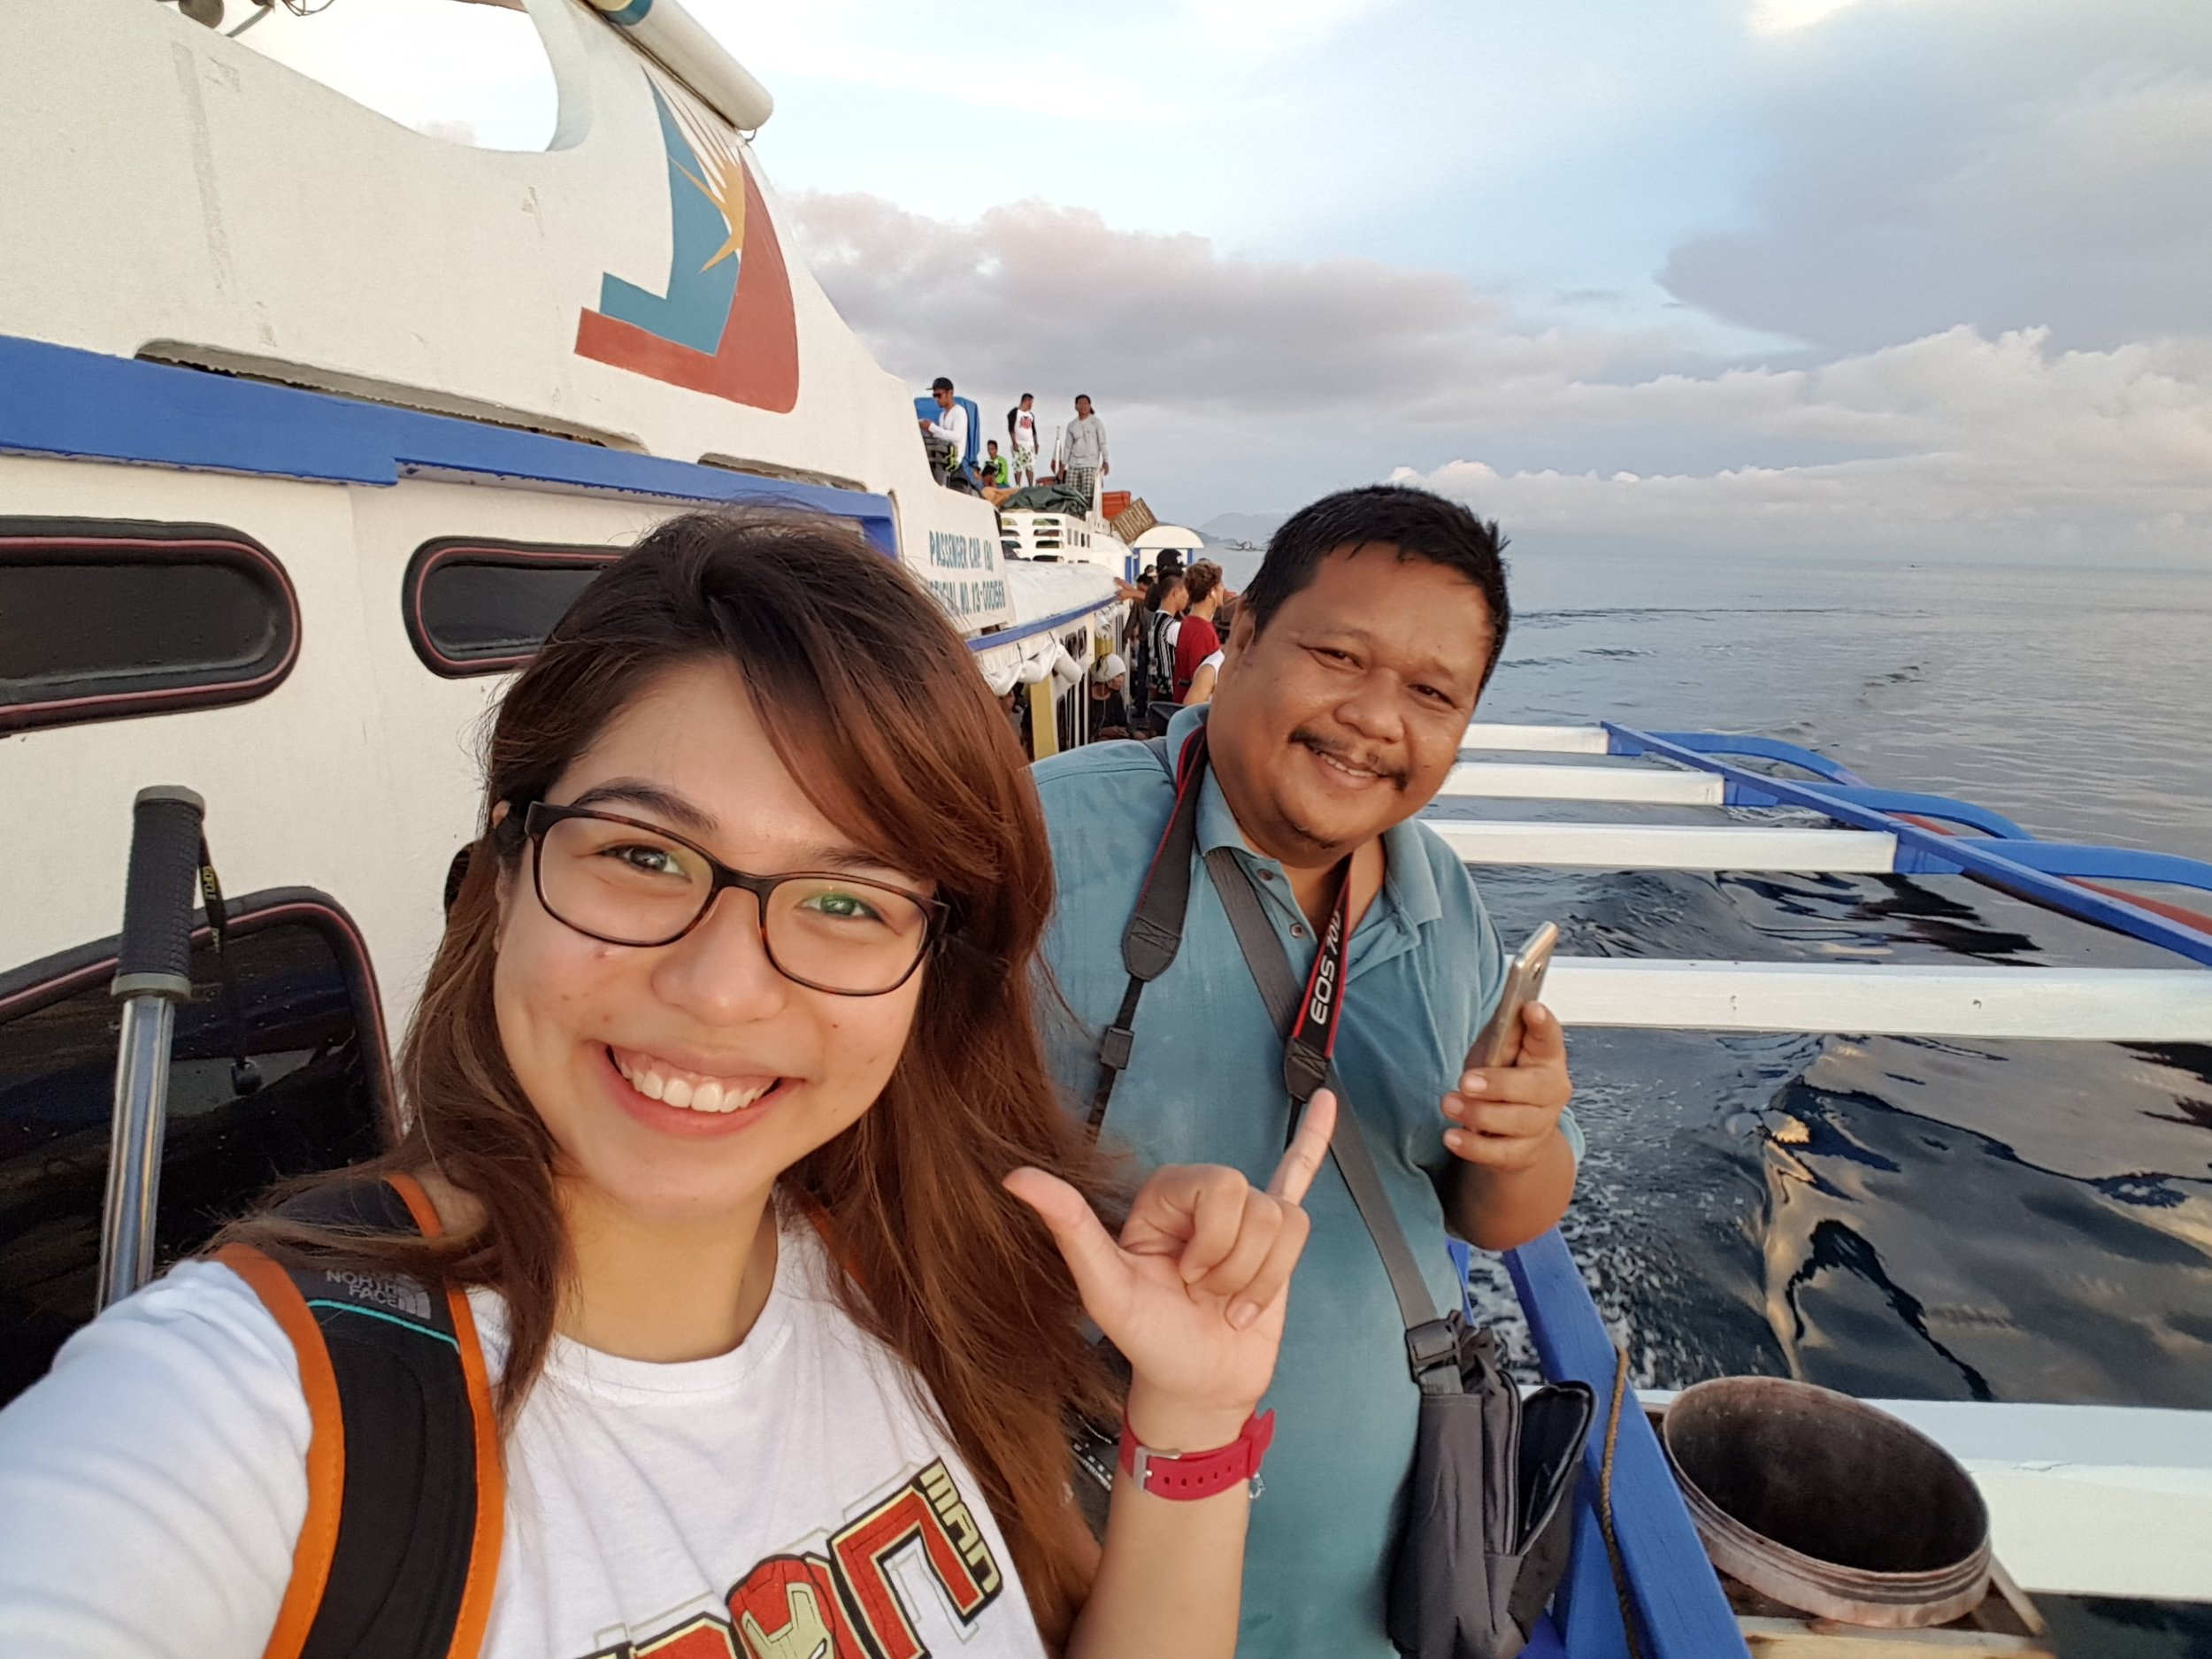 Sir Alex and I having a grand time standing outside the boat on the way to Siargao Island.